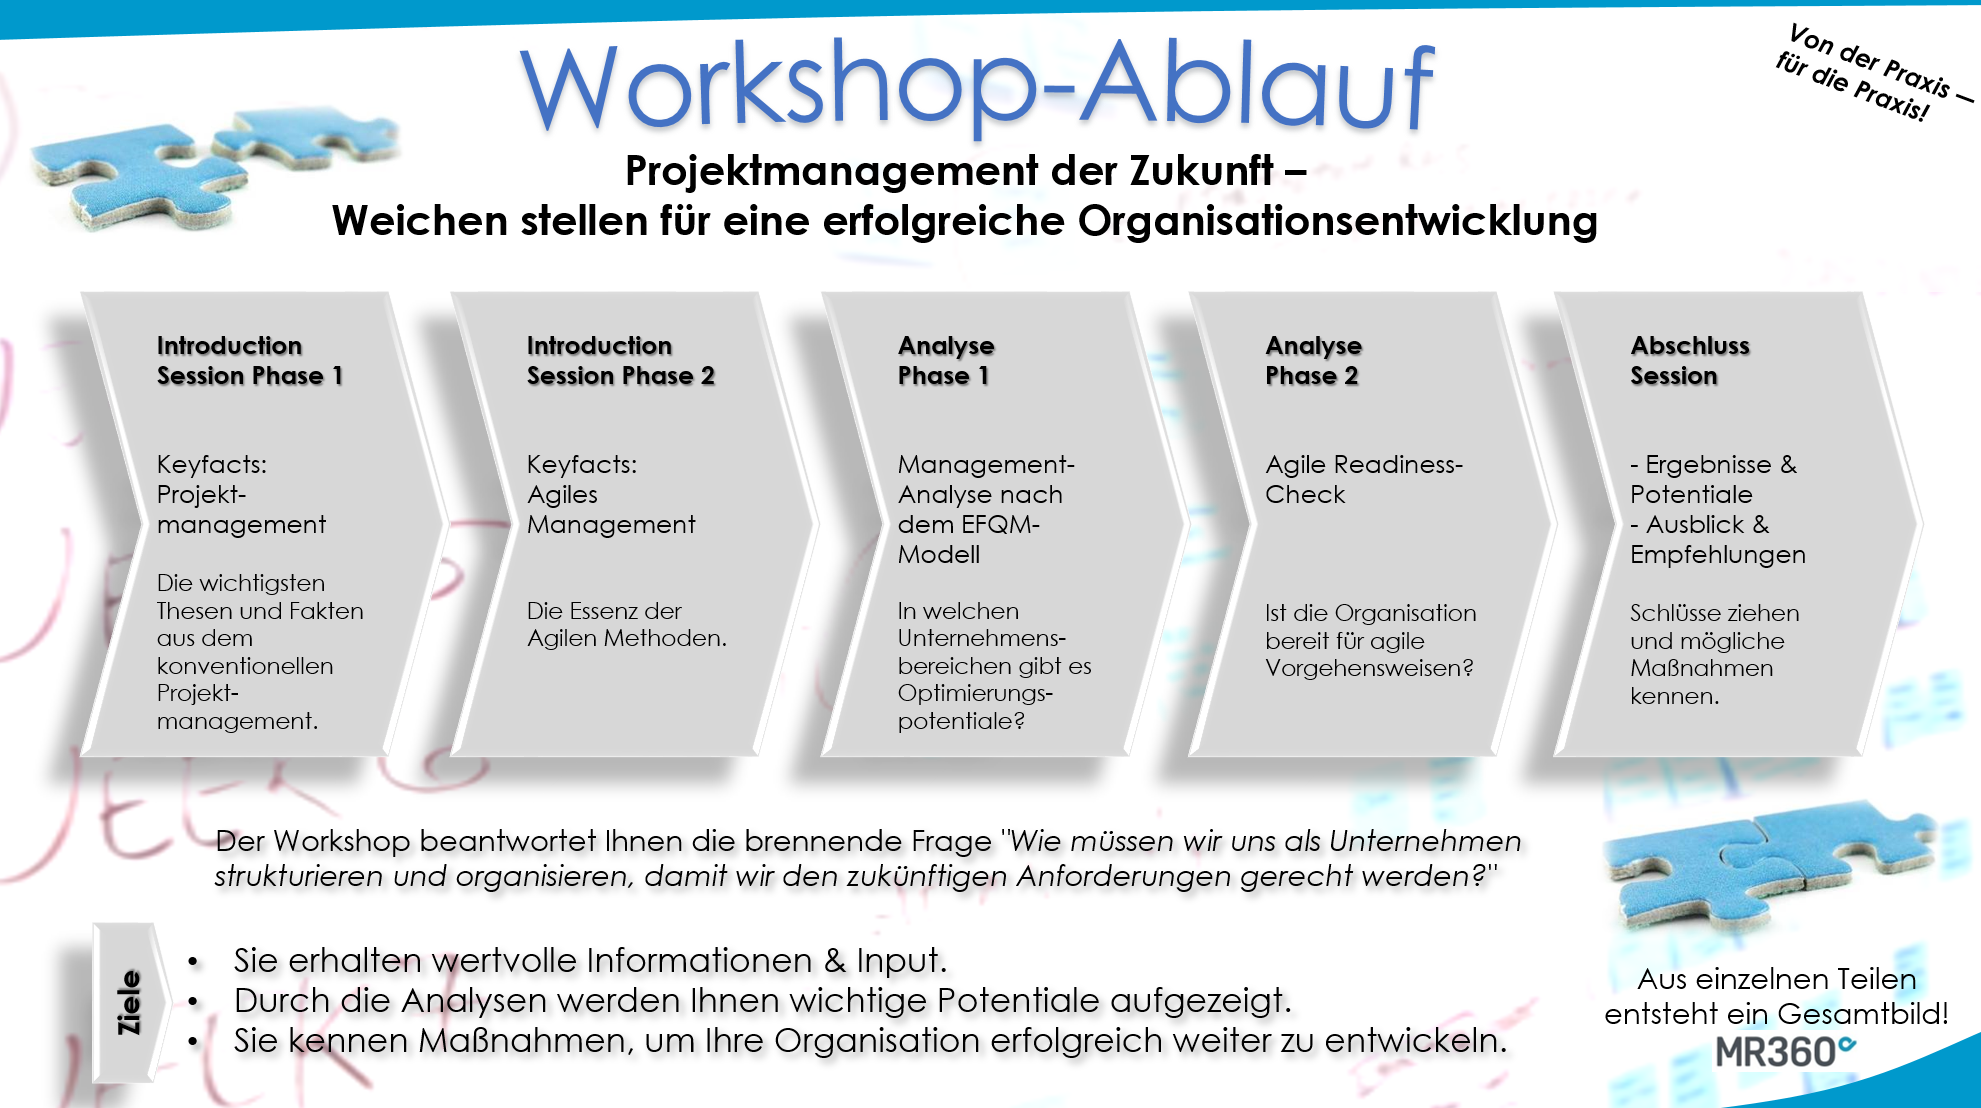 mr360-ablauf-workshop-01